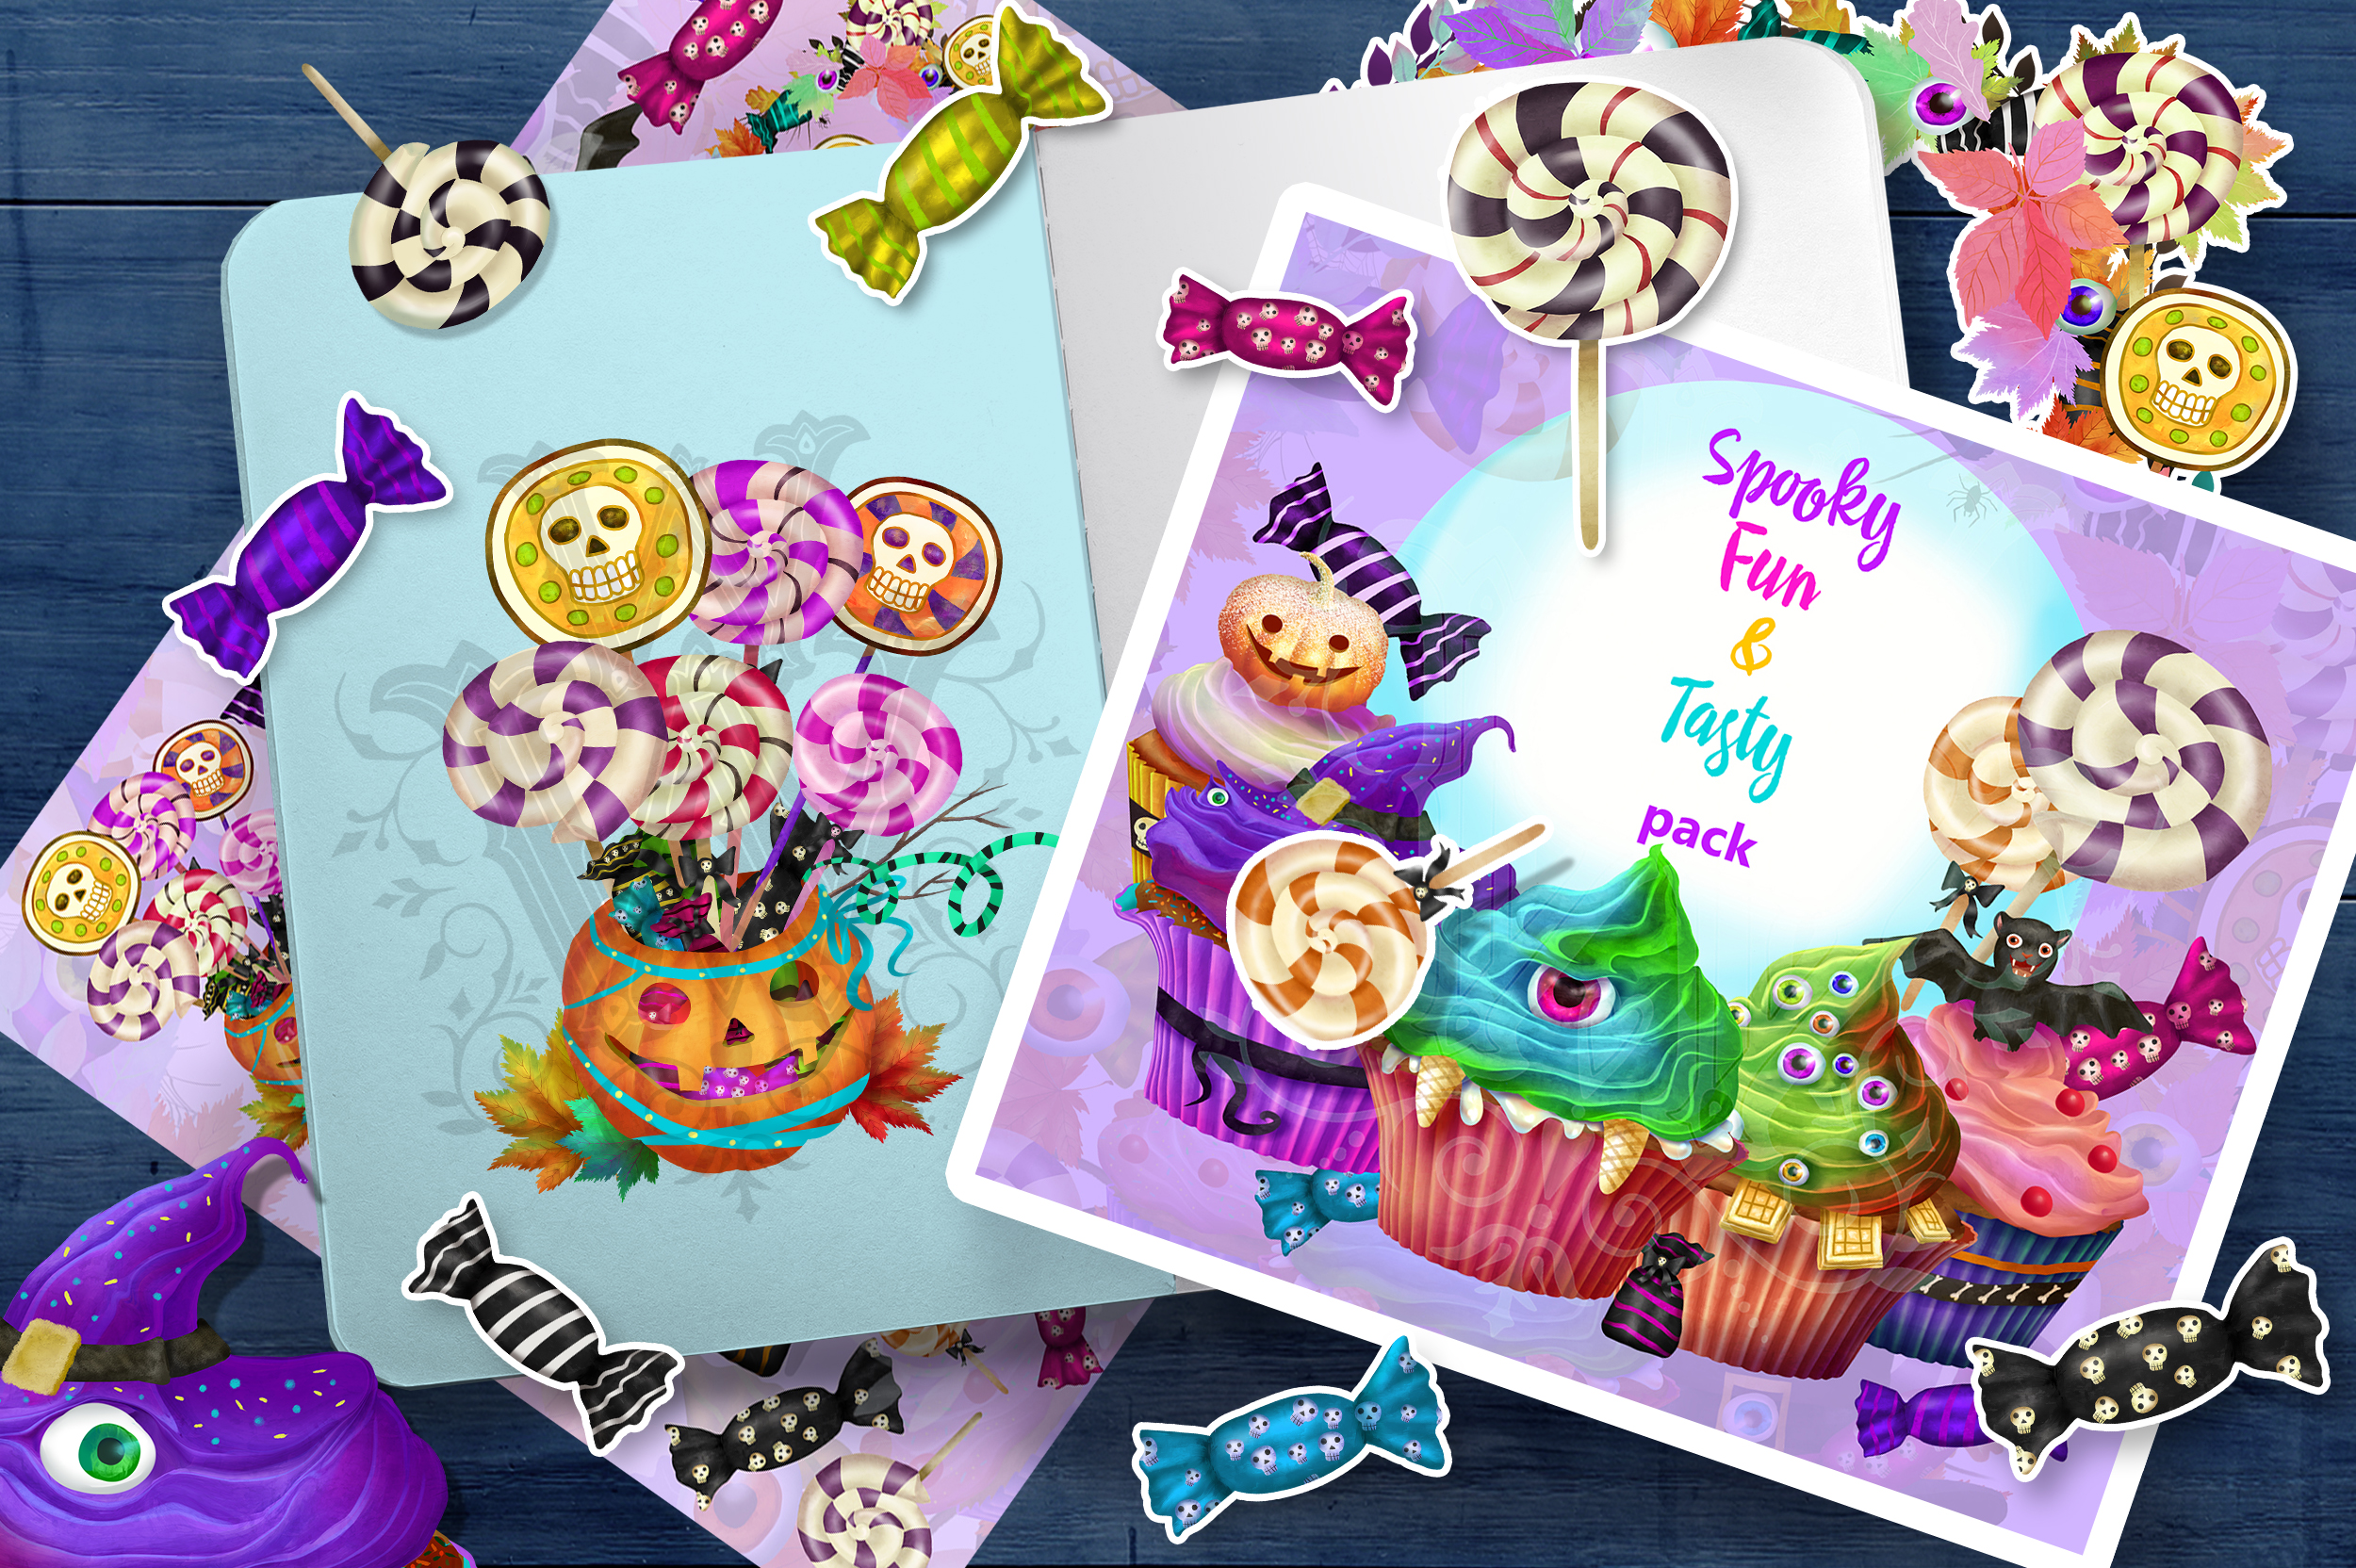 Cute Halloween monster sweets clipart set with wreath example image 1